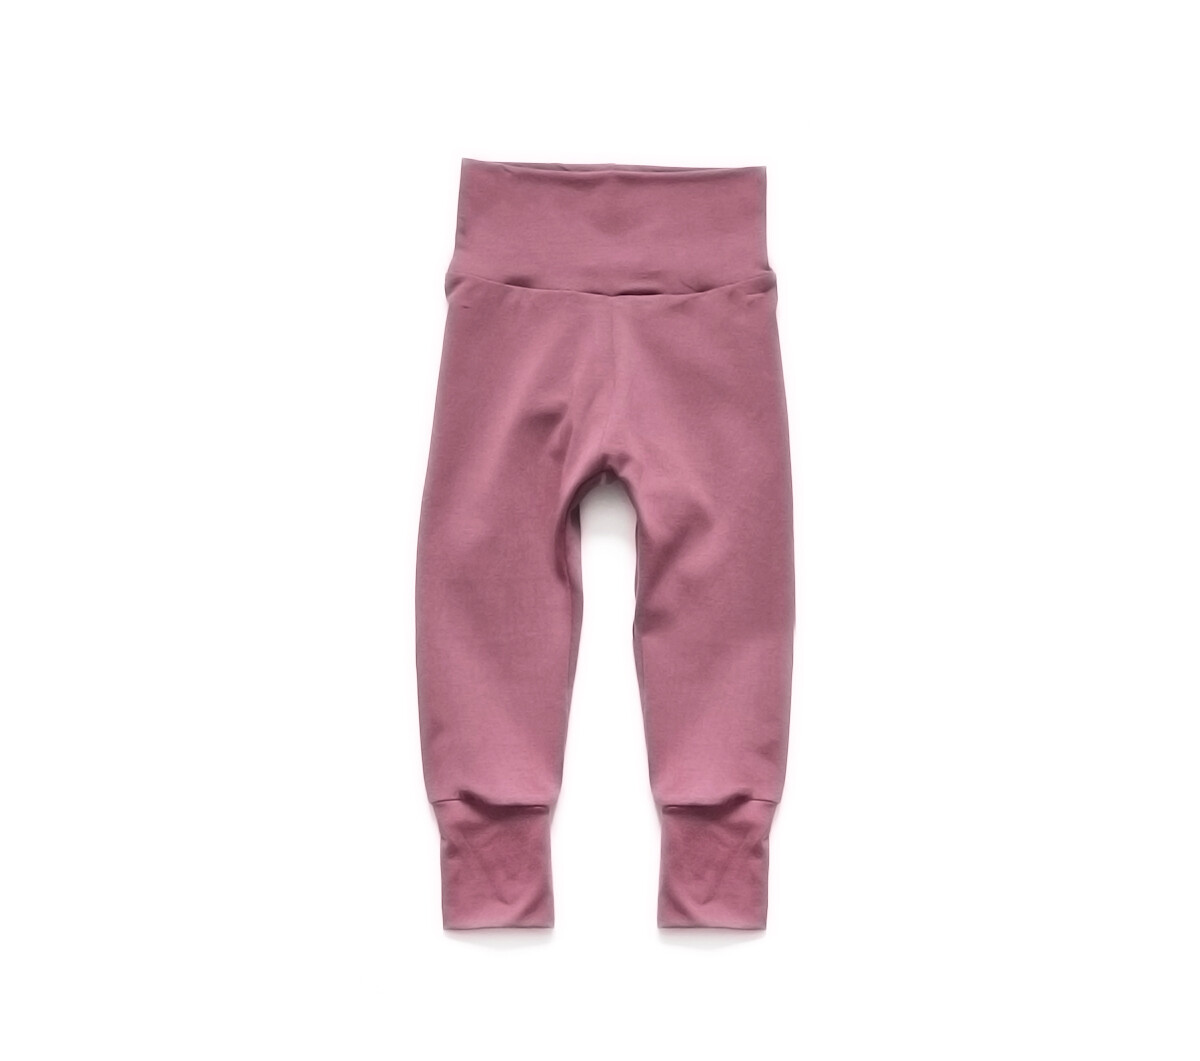 Little Sprout Pants™ in Dusty Rose |  Grow With Me Leggings - Stretch